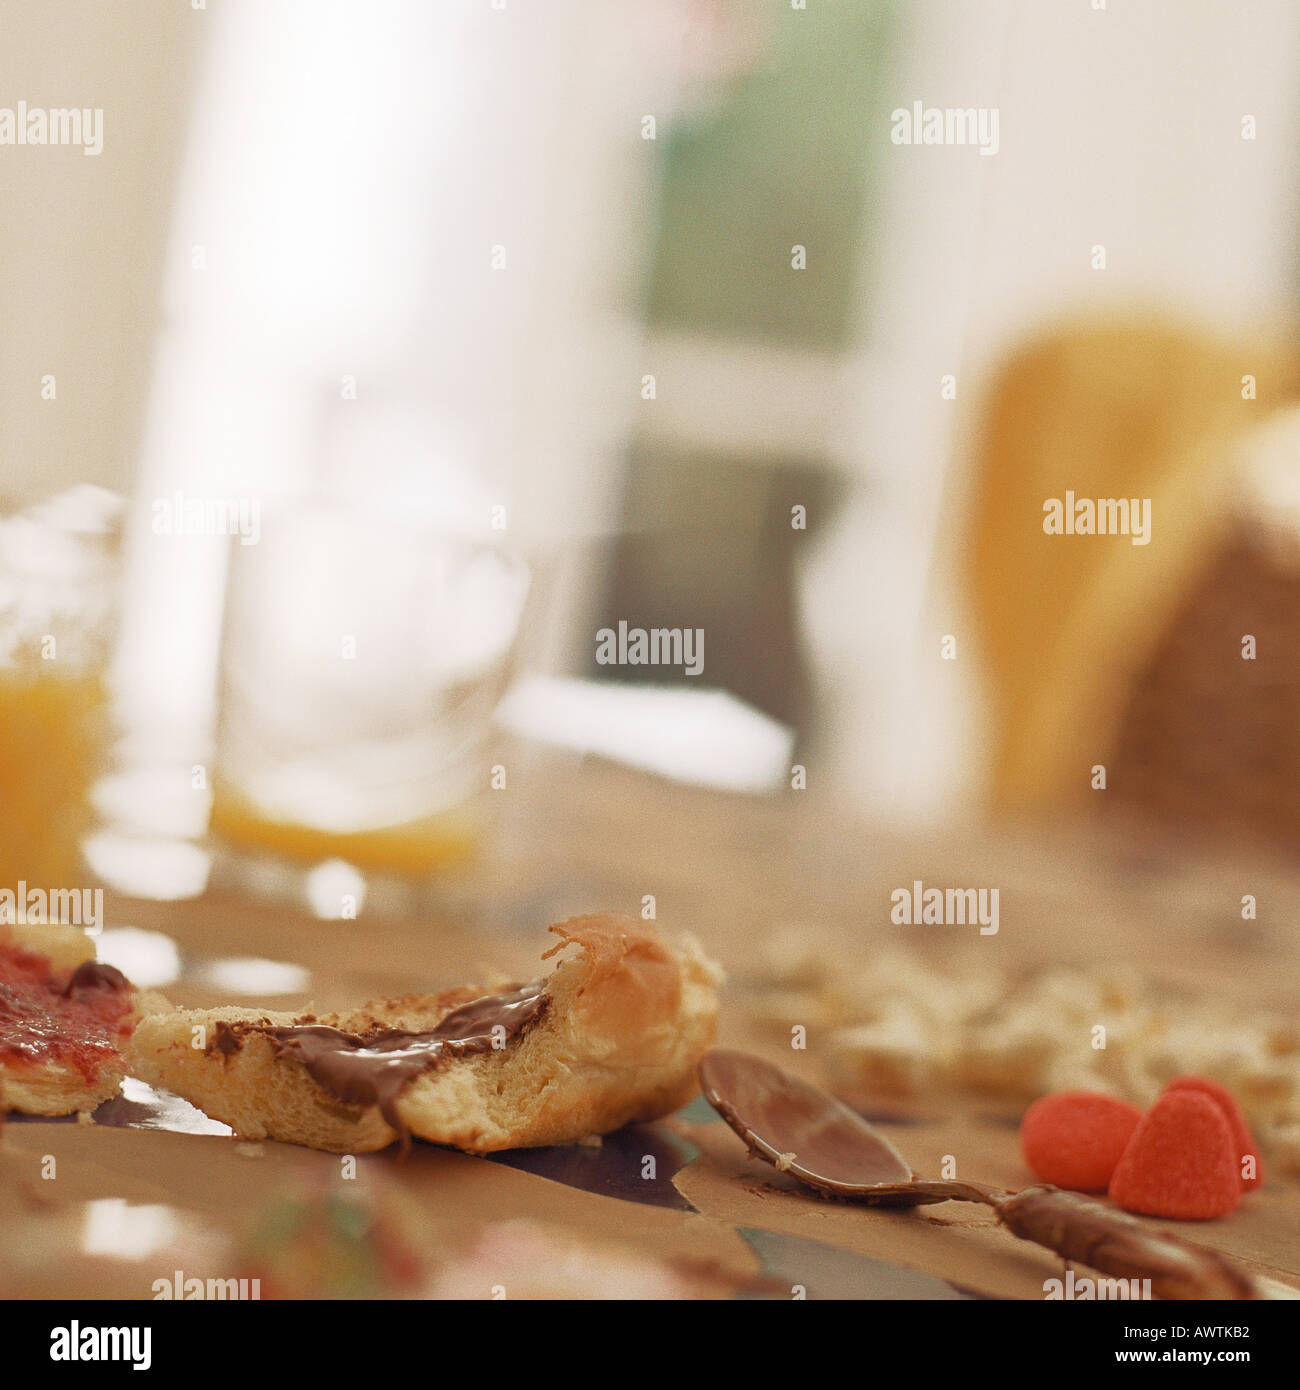 Messy table with leftover breakfast - Stock Image